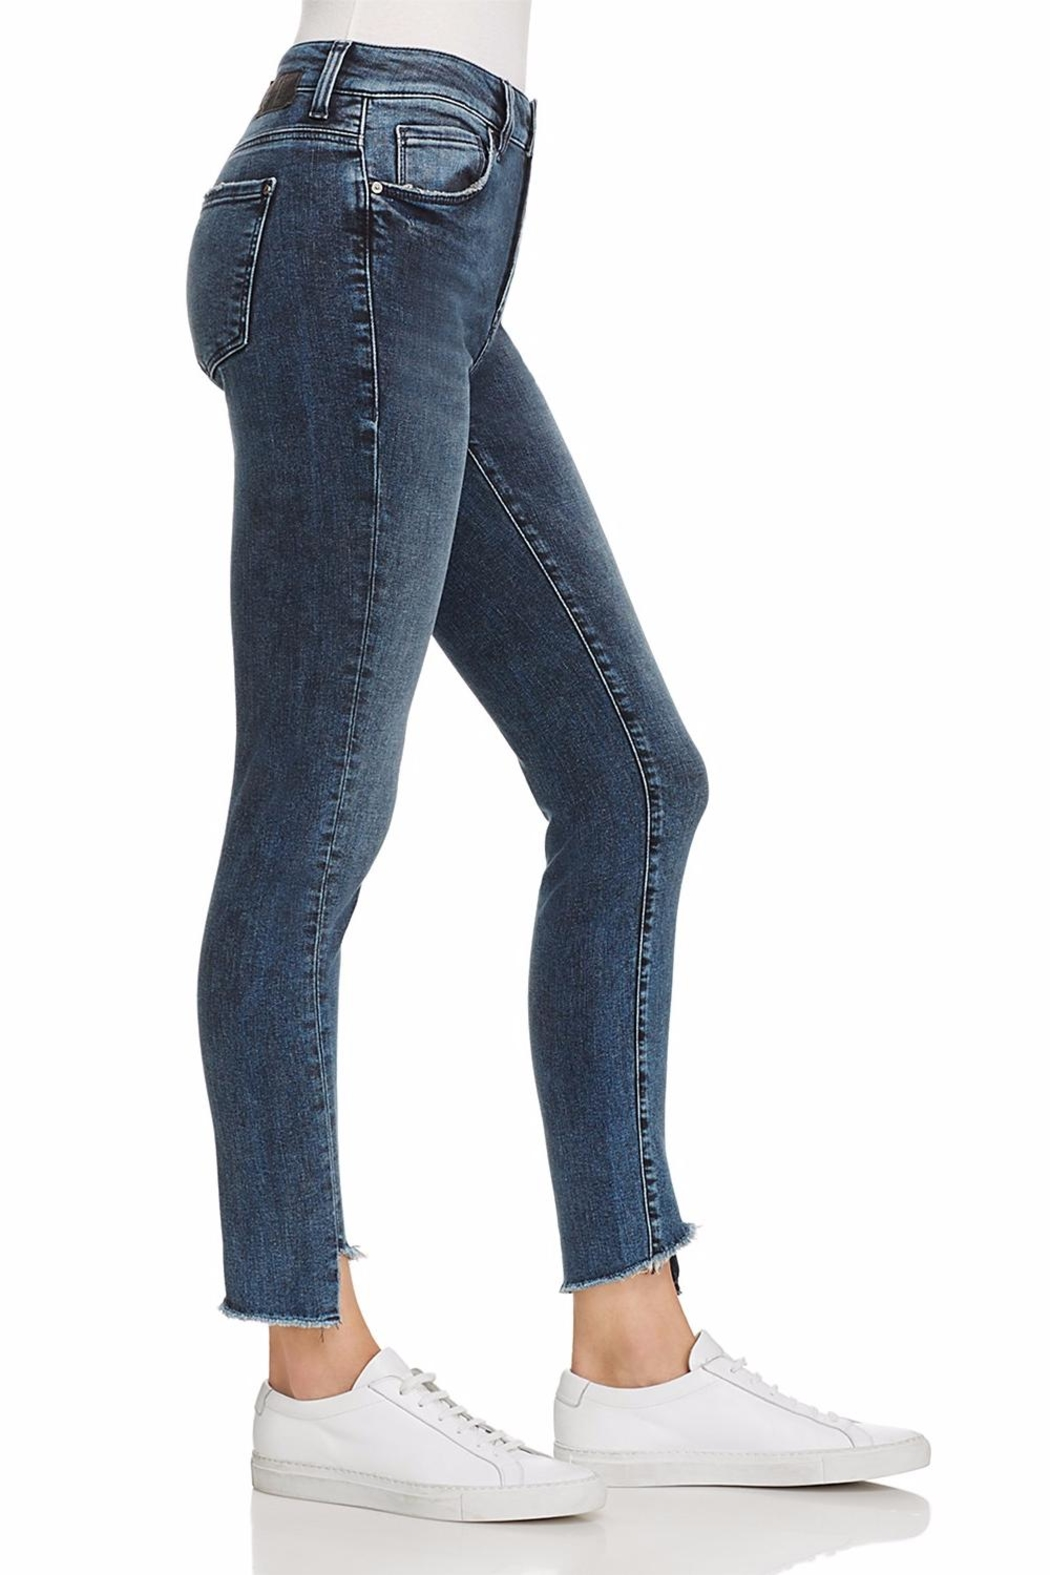 Mavi Jeans Twisted Seam Jeans - Front Full Image